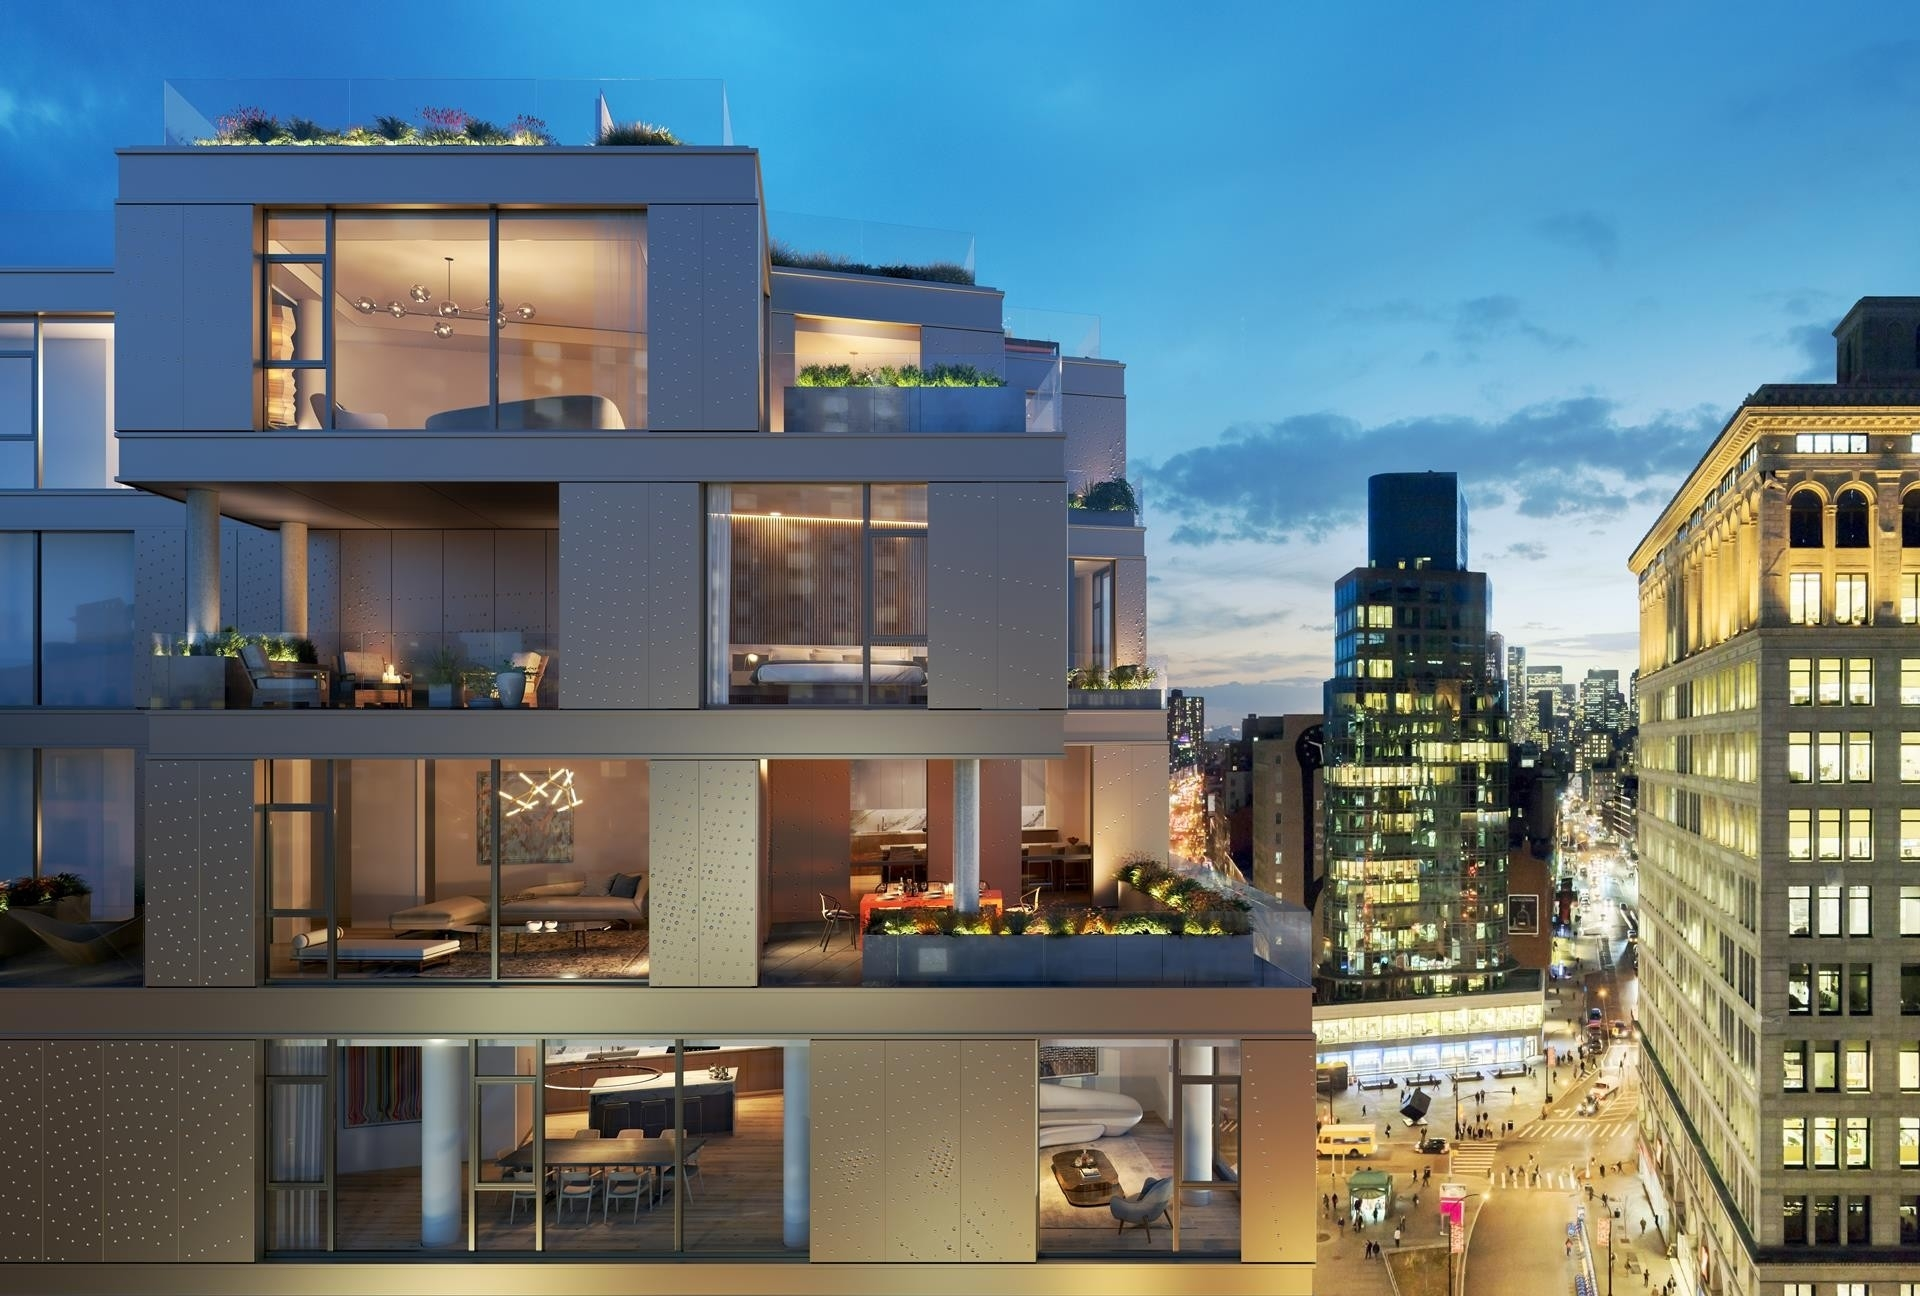 27. Condominiums for Sale at 80 E 10TH ST , PH East Village, New York, NY 10003